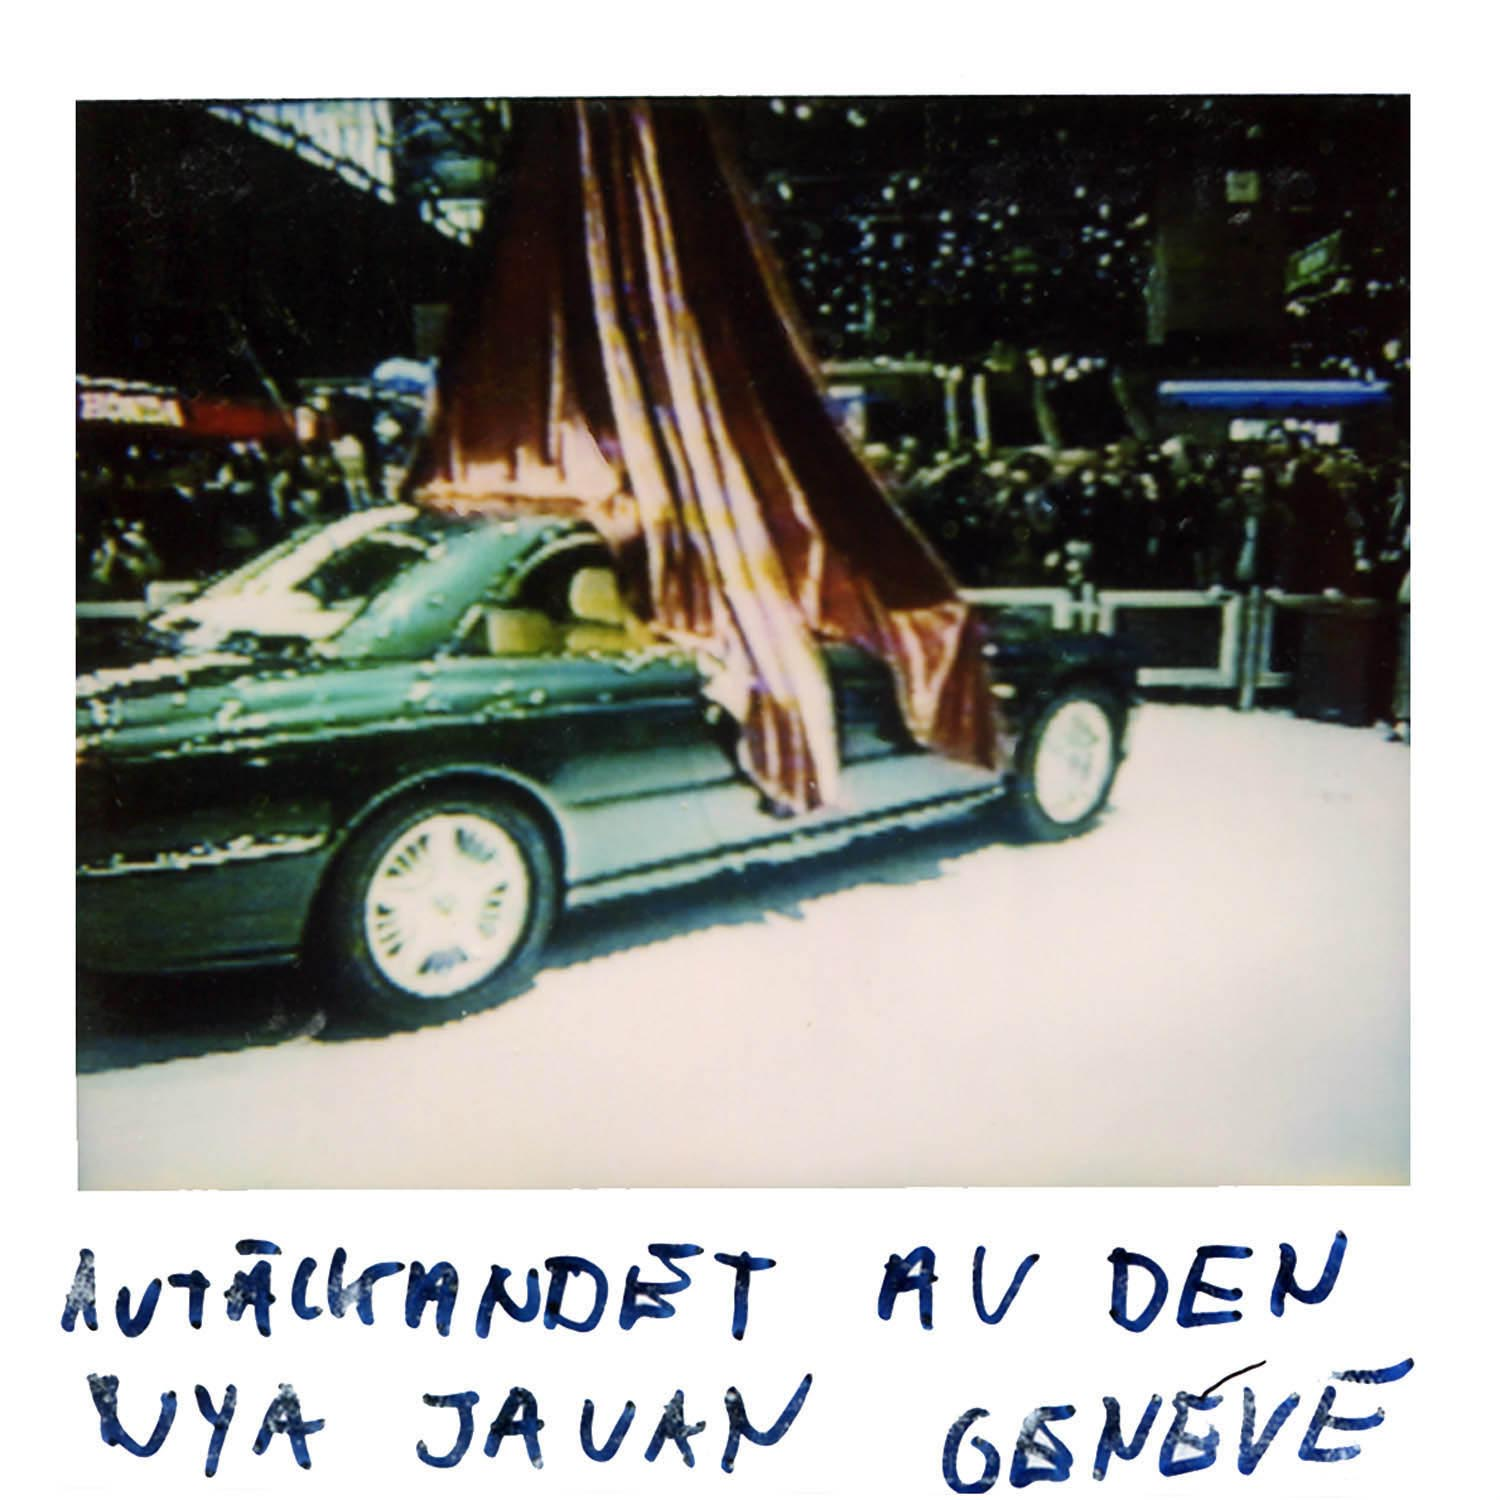 The uncovering of the new JAG  Genéve